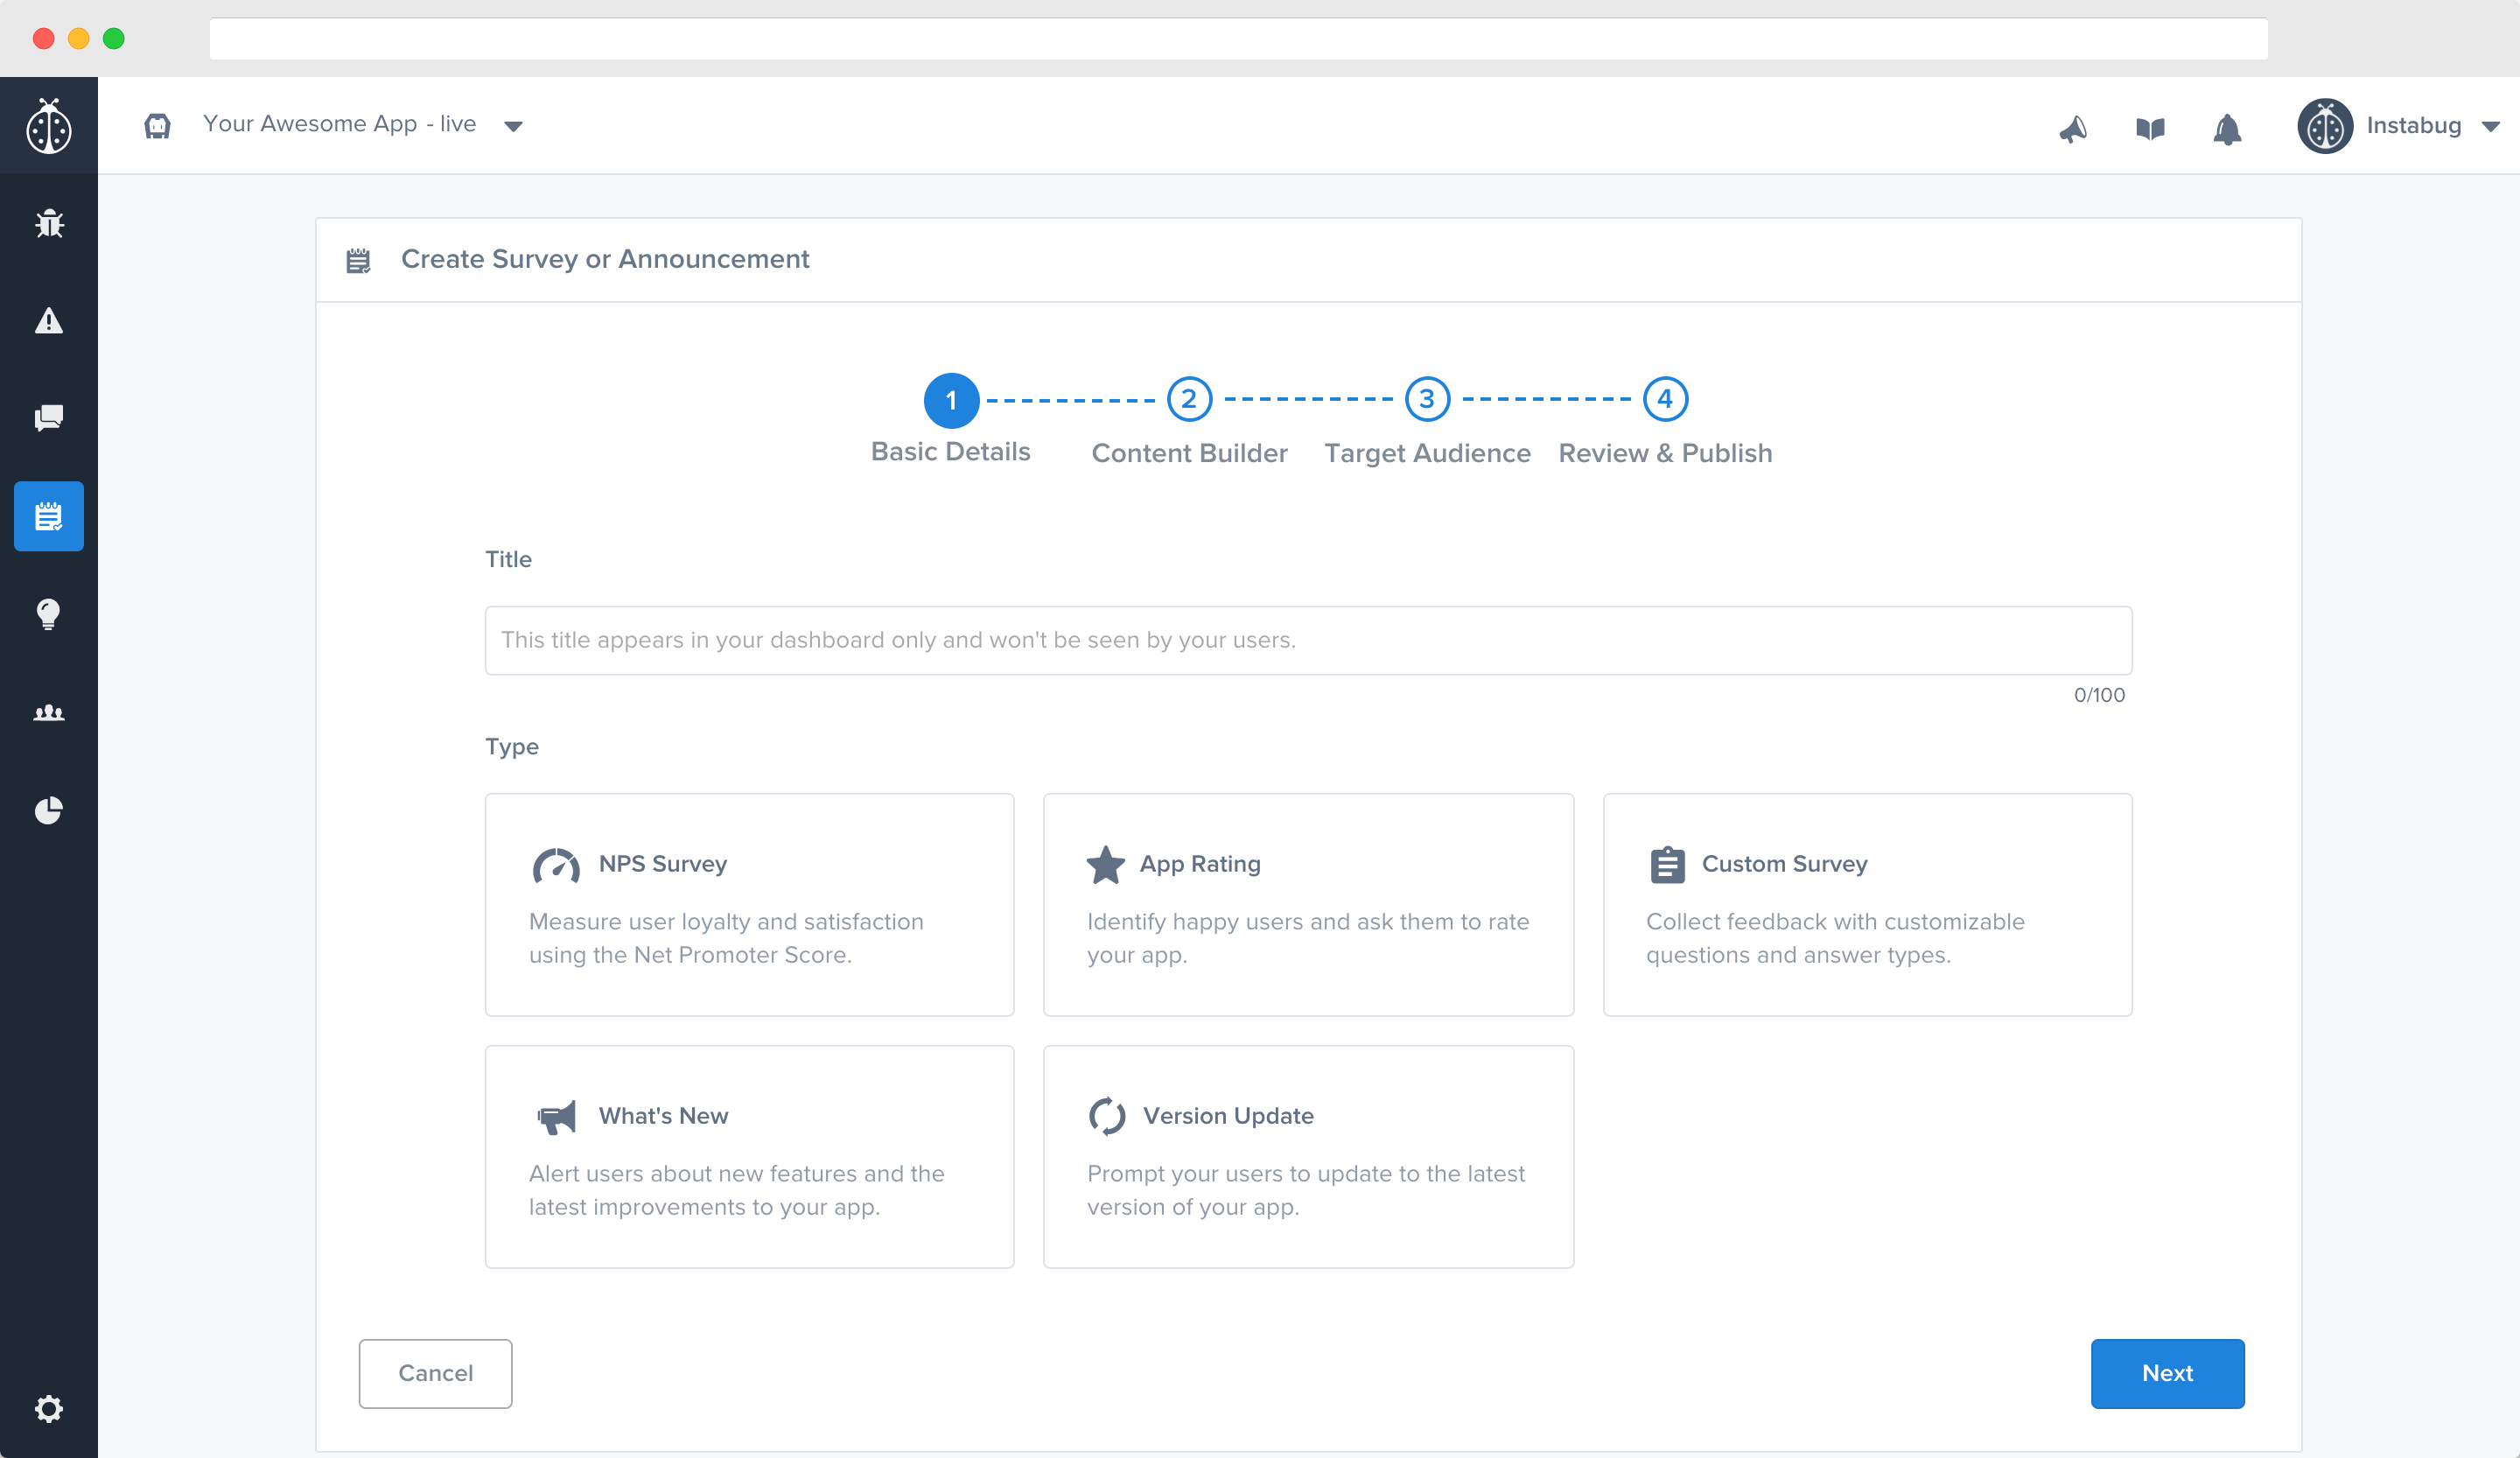 This is the first step of the survey creation flow in your dashboard.